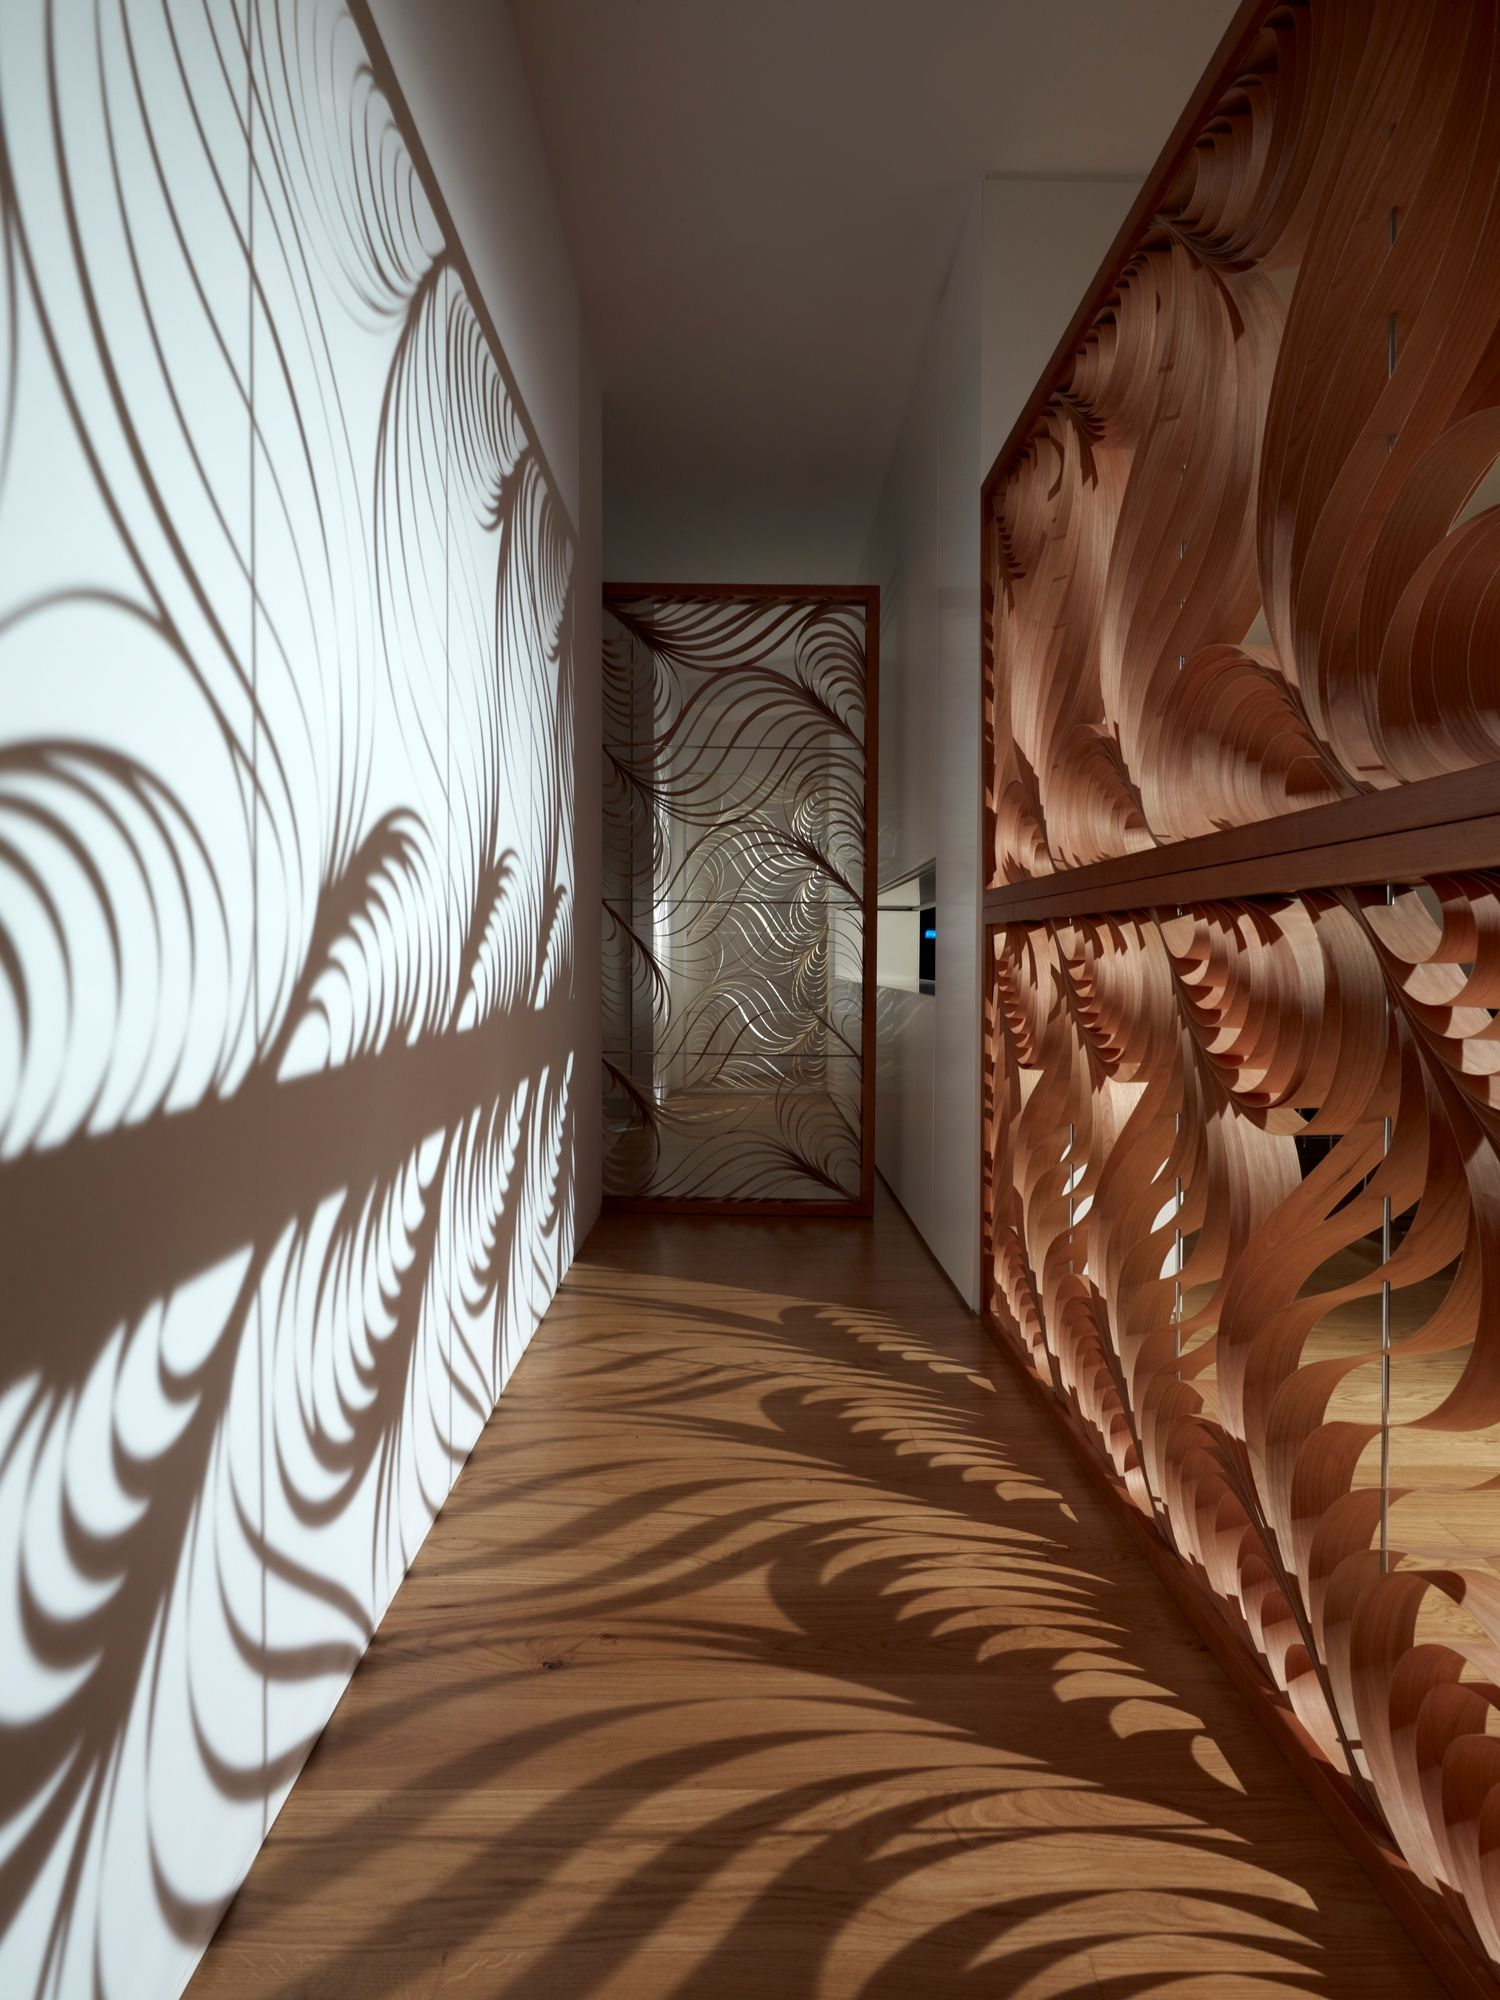 Paisley Was Created By The Spanish Designer Luis Eslava For Lzf This Modular Screen Made Of Cherry Veneer Luxury Hotel Design Architecture Design